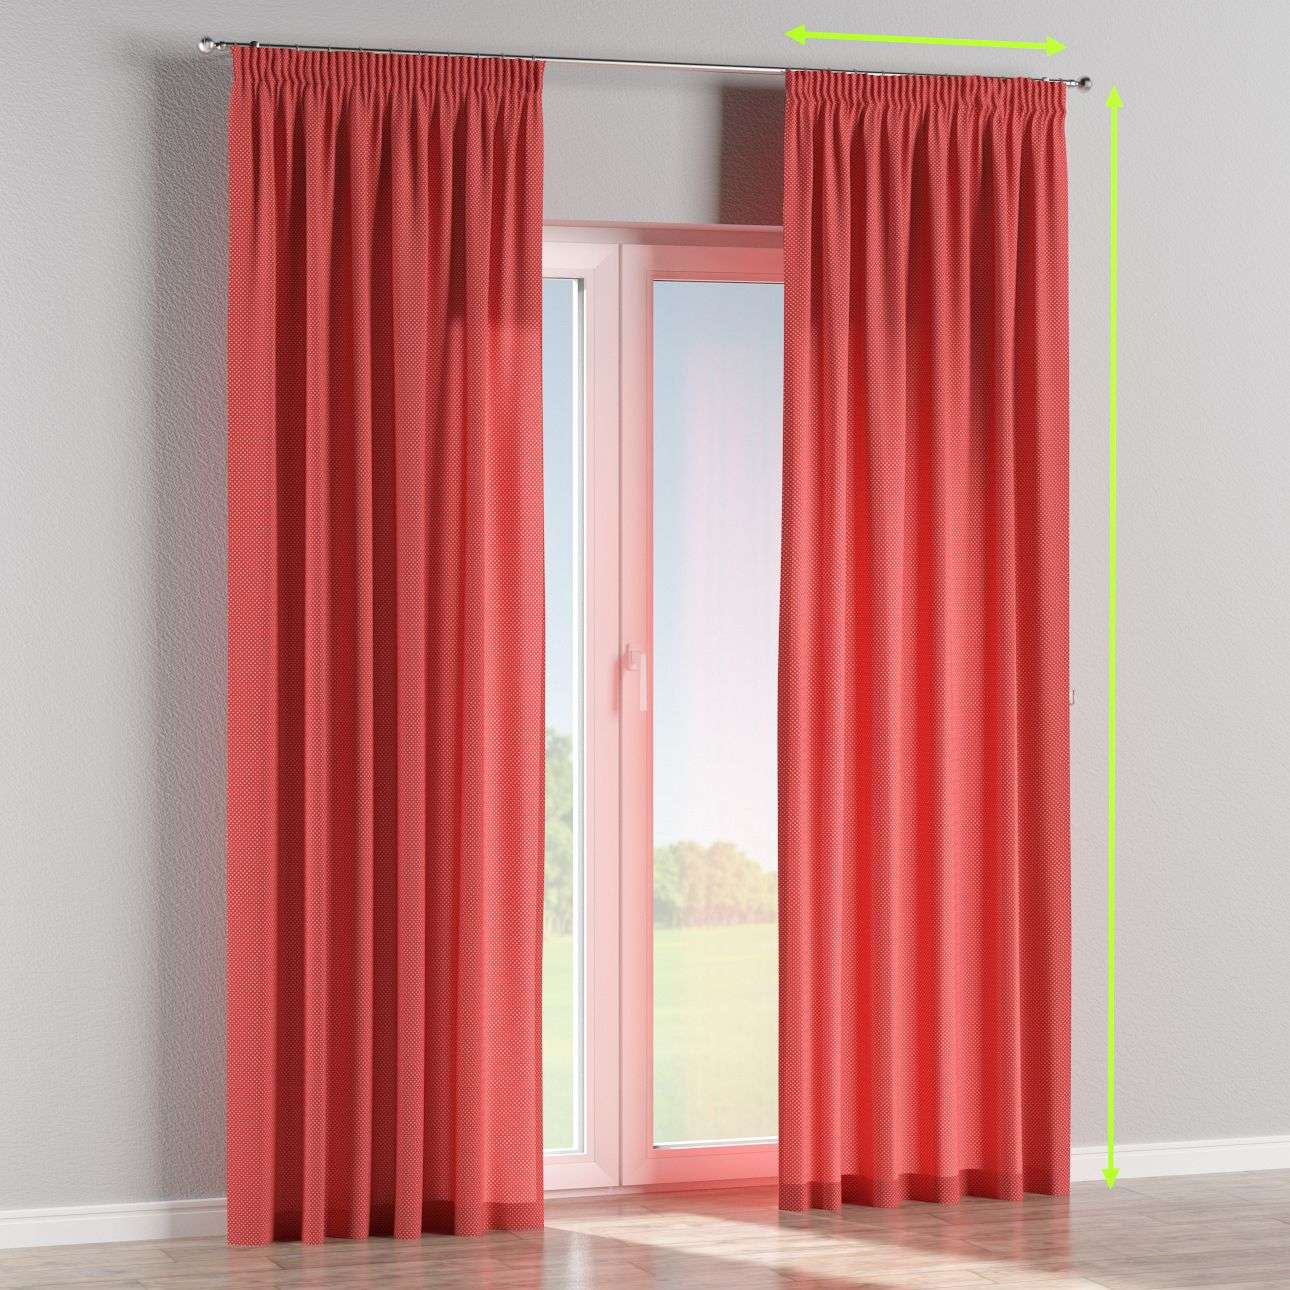 Pencil pleat lined curtains in collection Ashley, fabric: 137-50